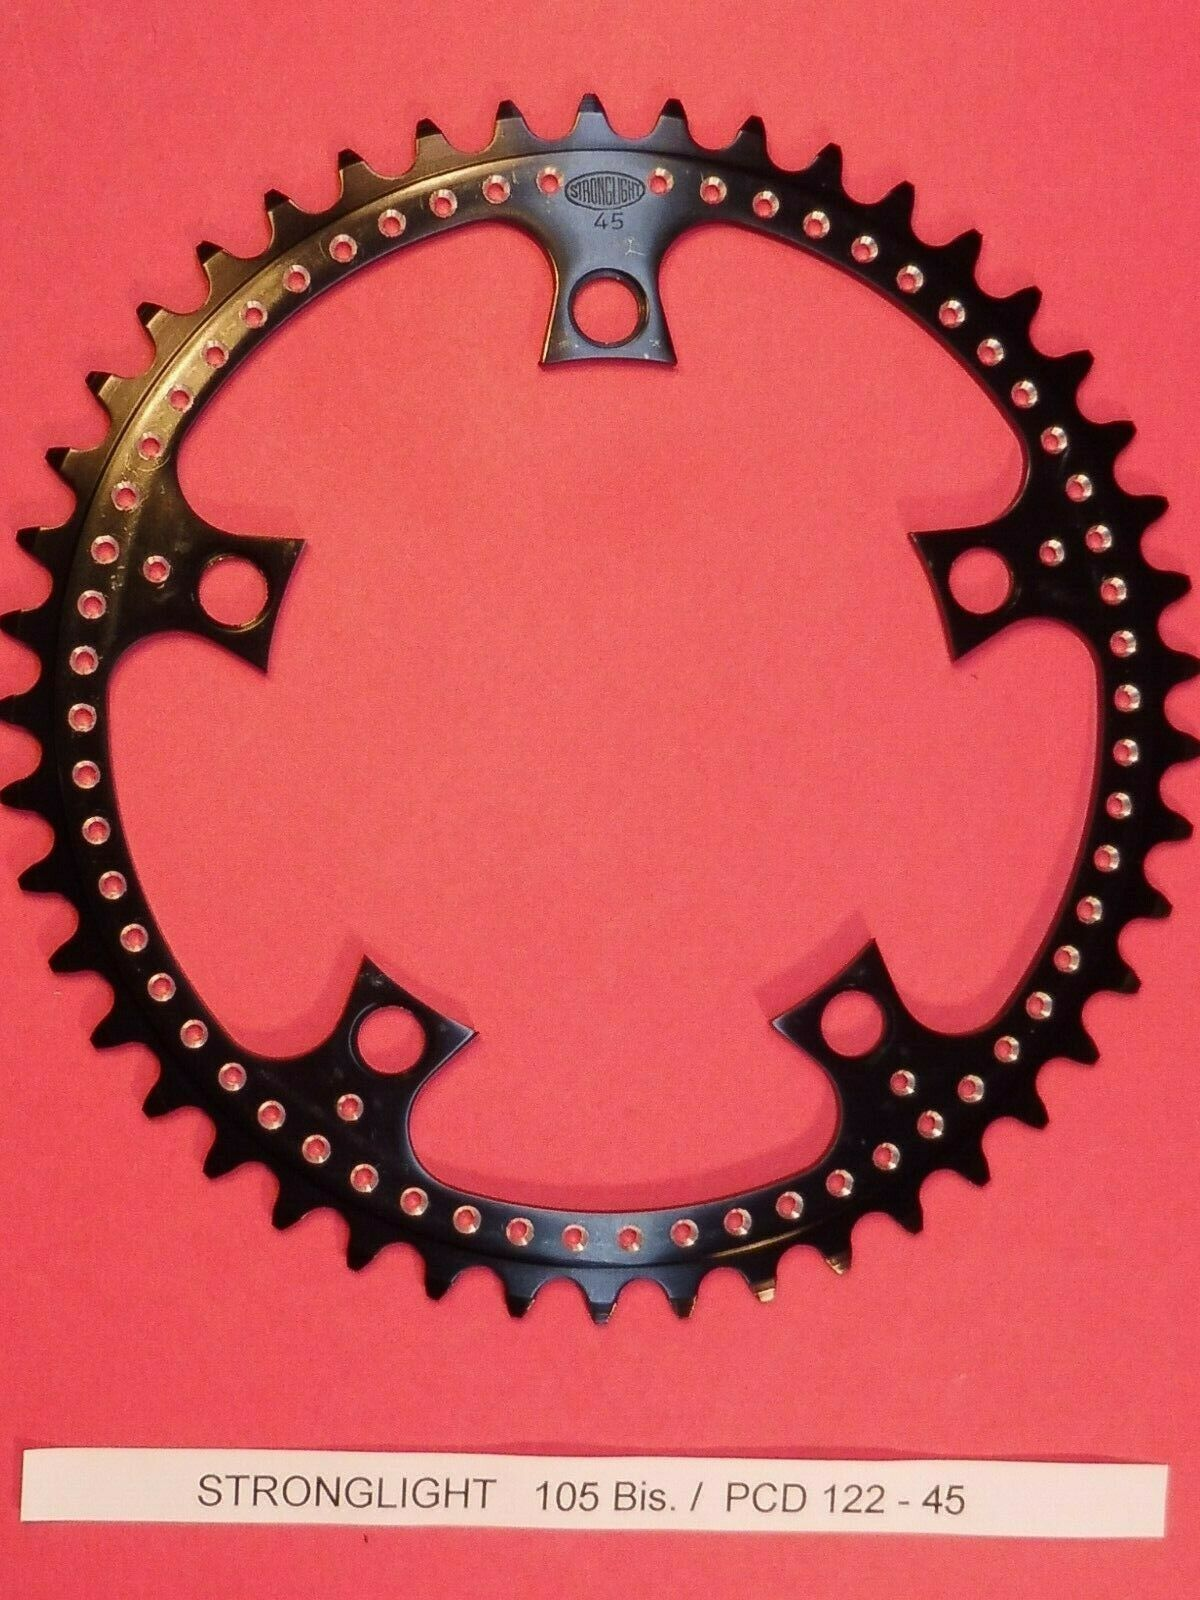 Stronglight mod. 105 Bis 122 PCD - 45  chainring   NOS L'eroica